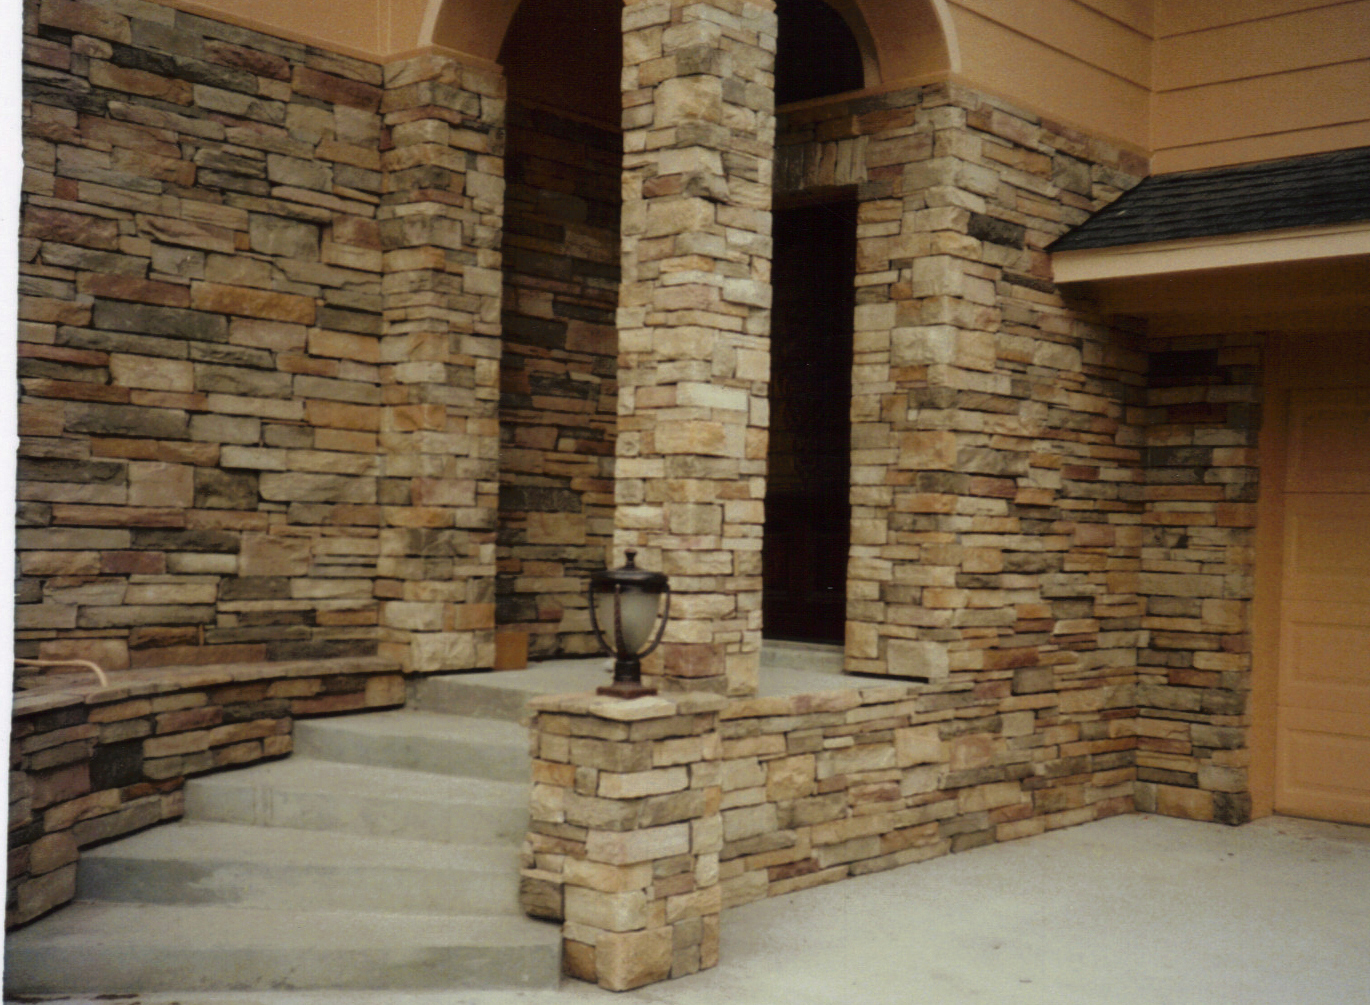 The Latest 30 Types Of stones For Interior And Exterior - Home Decor